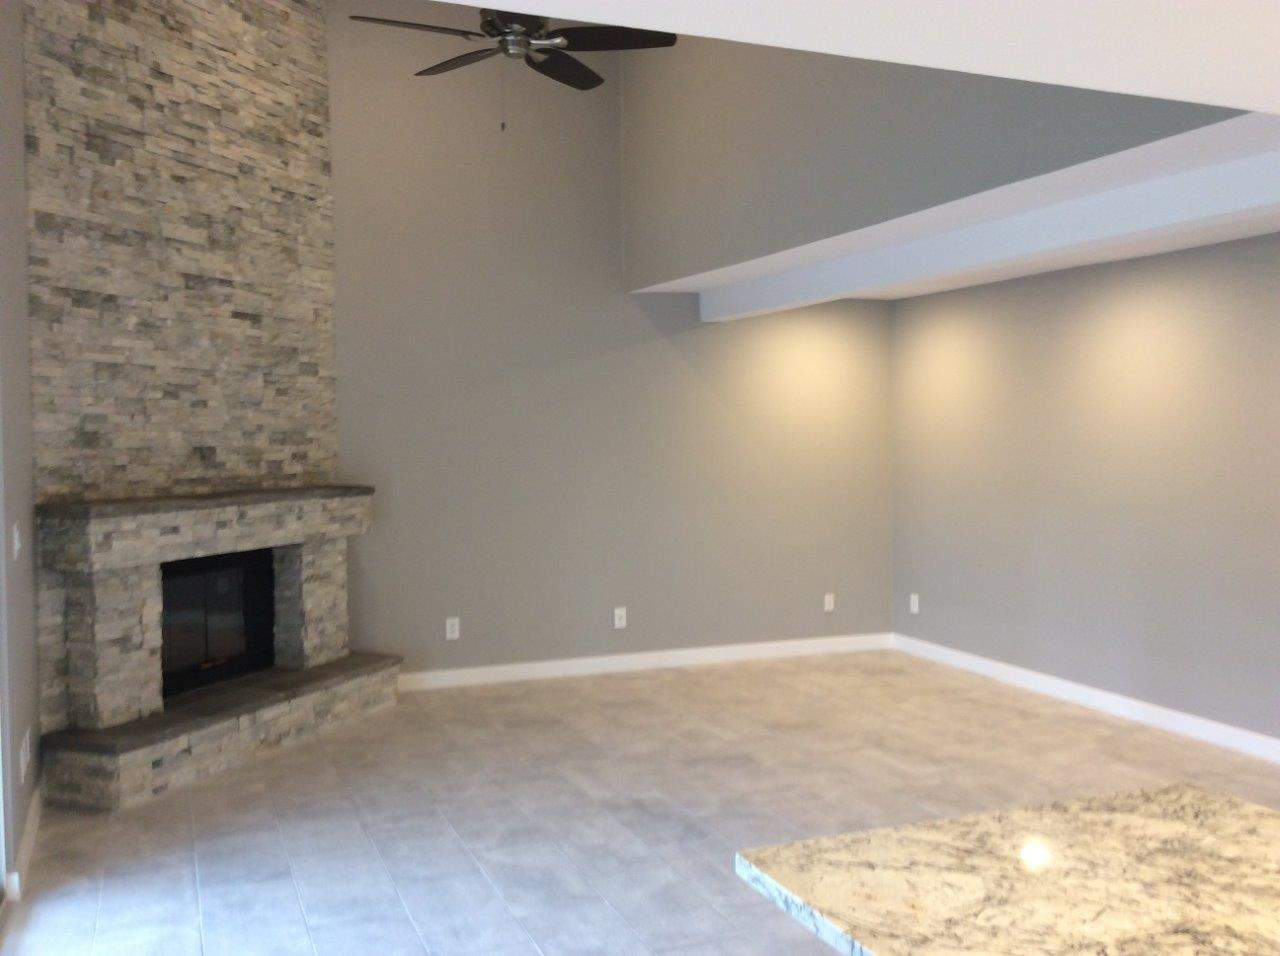 Residential house with fireplace and new paint job